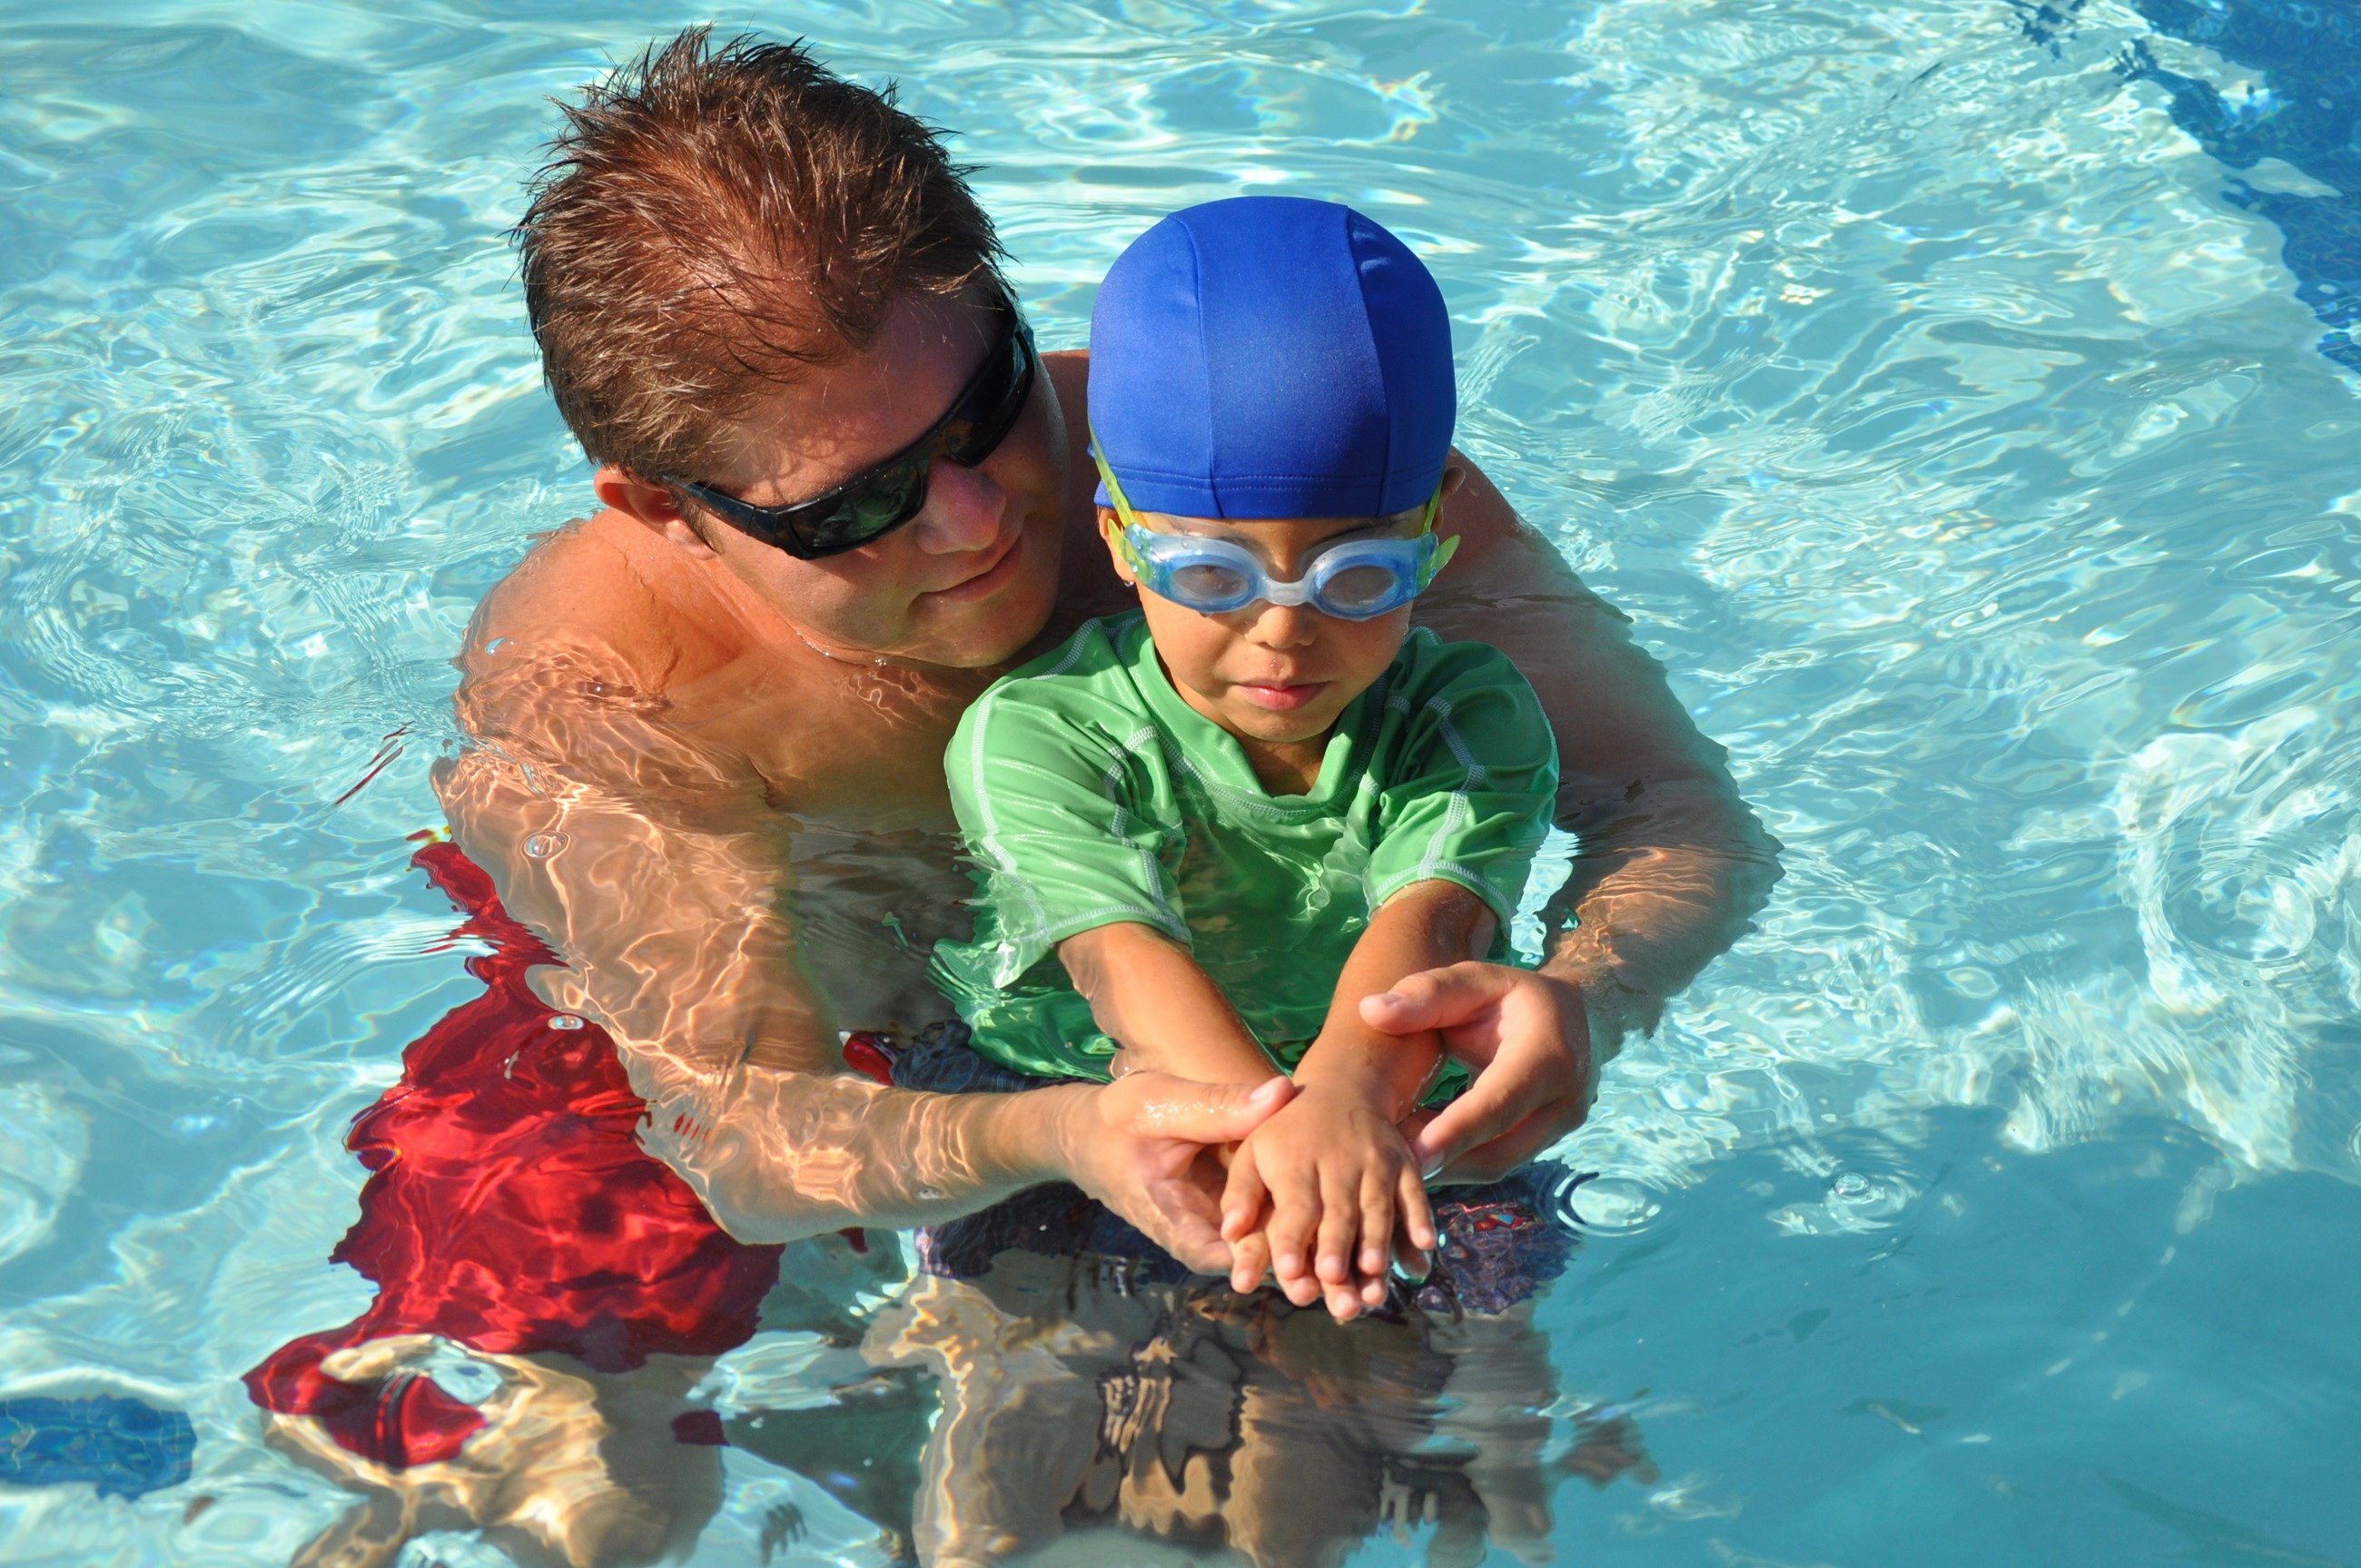 swim lessons summer american red cross learn to swim swimming aquatics sam water